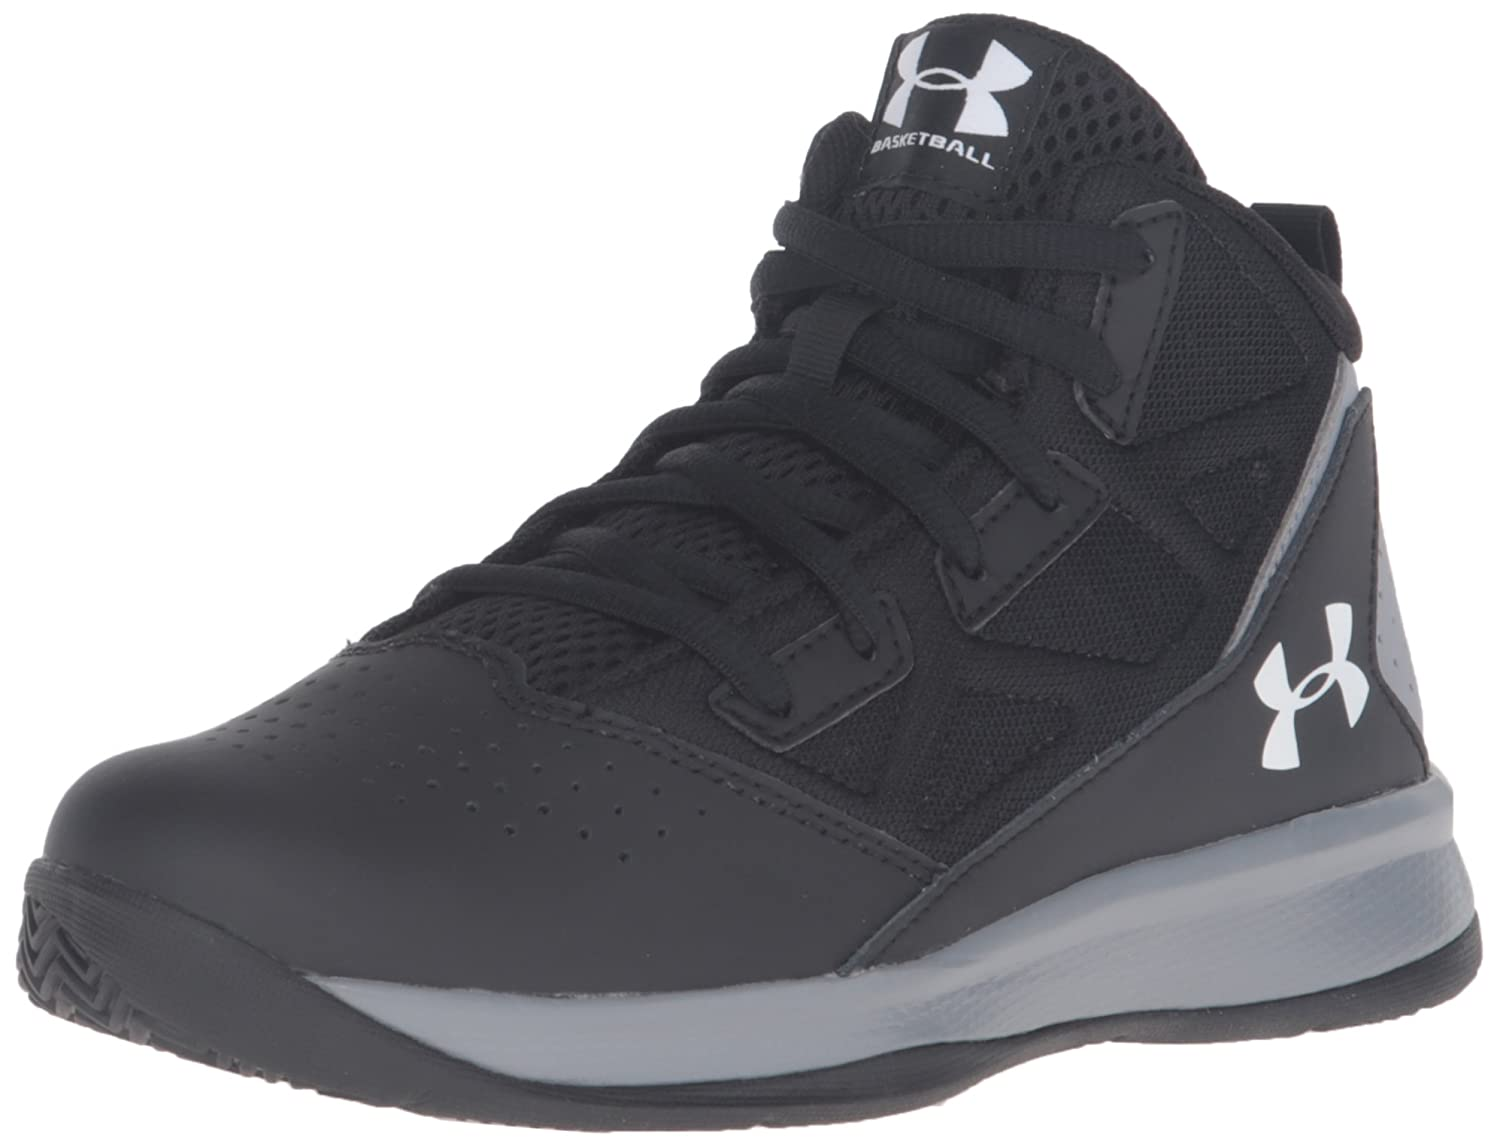 b978f814fac Under Armour Kids  Boys  Pre School Jet Mid Basketball Shoe